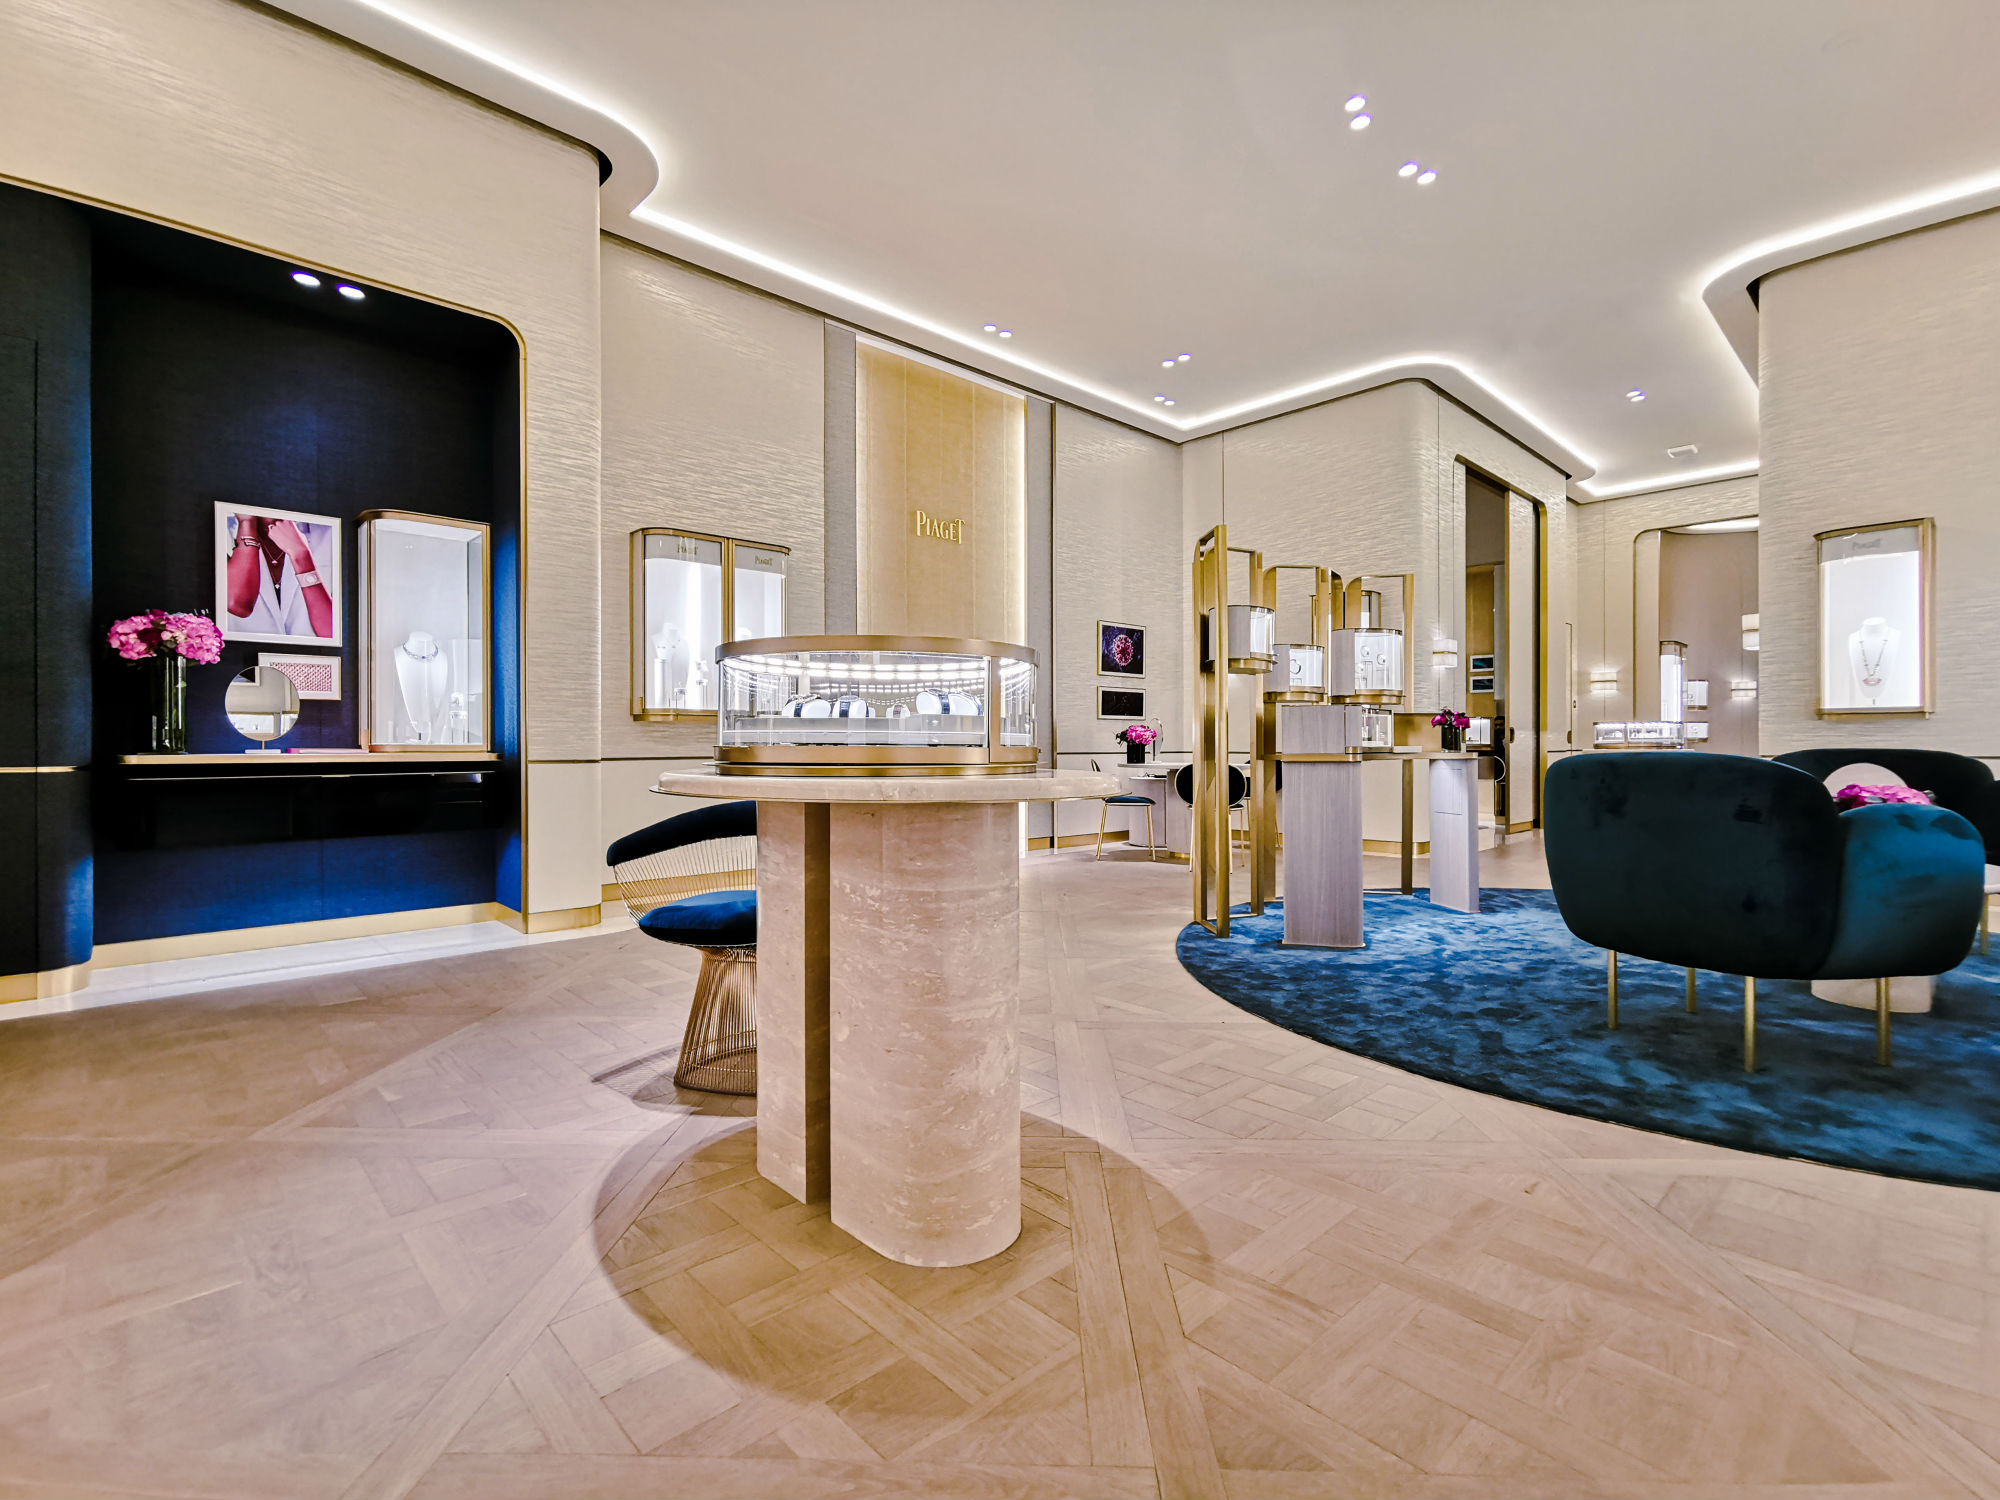 See inside the new flagship Piaget store in Abu Dhabi